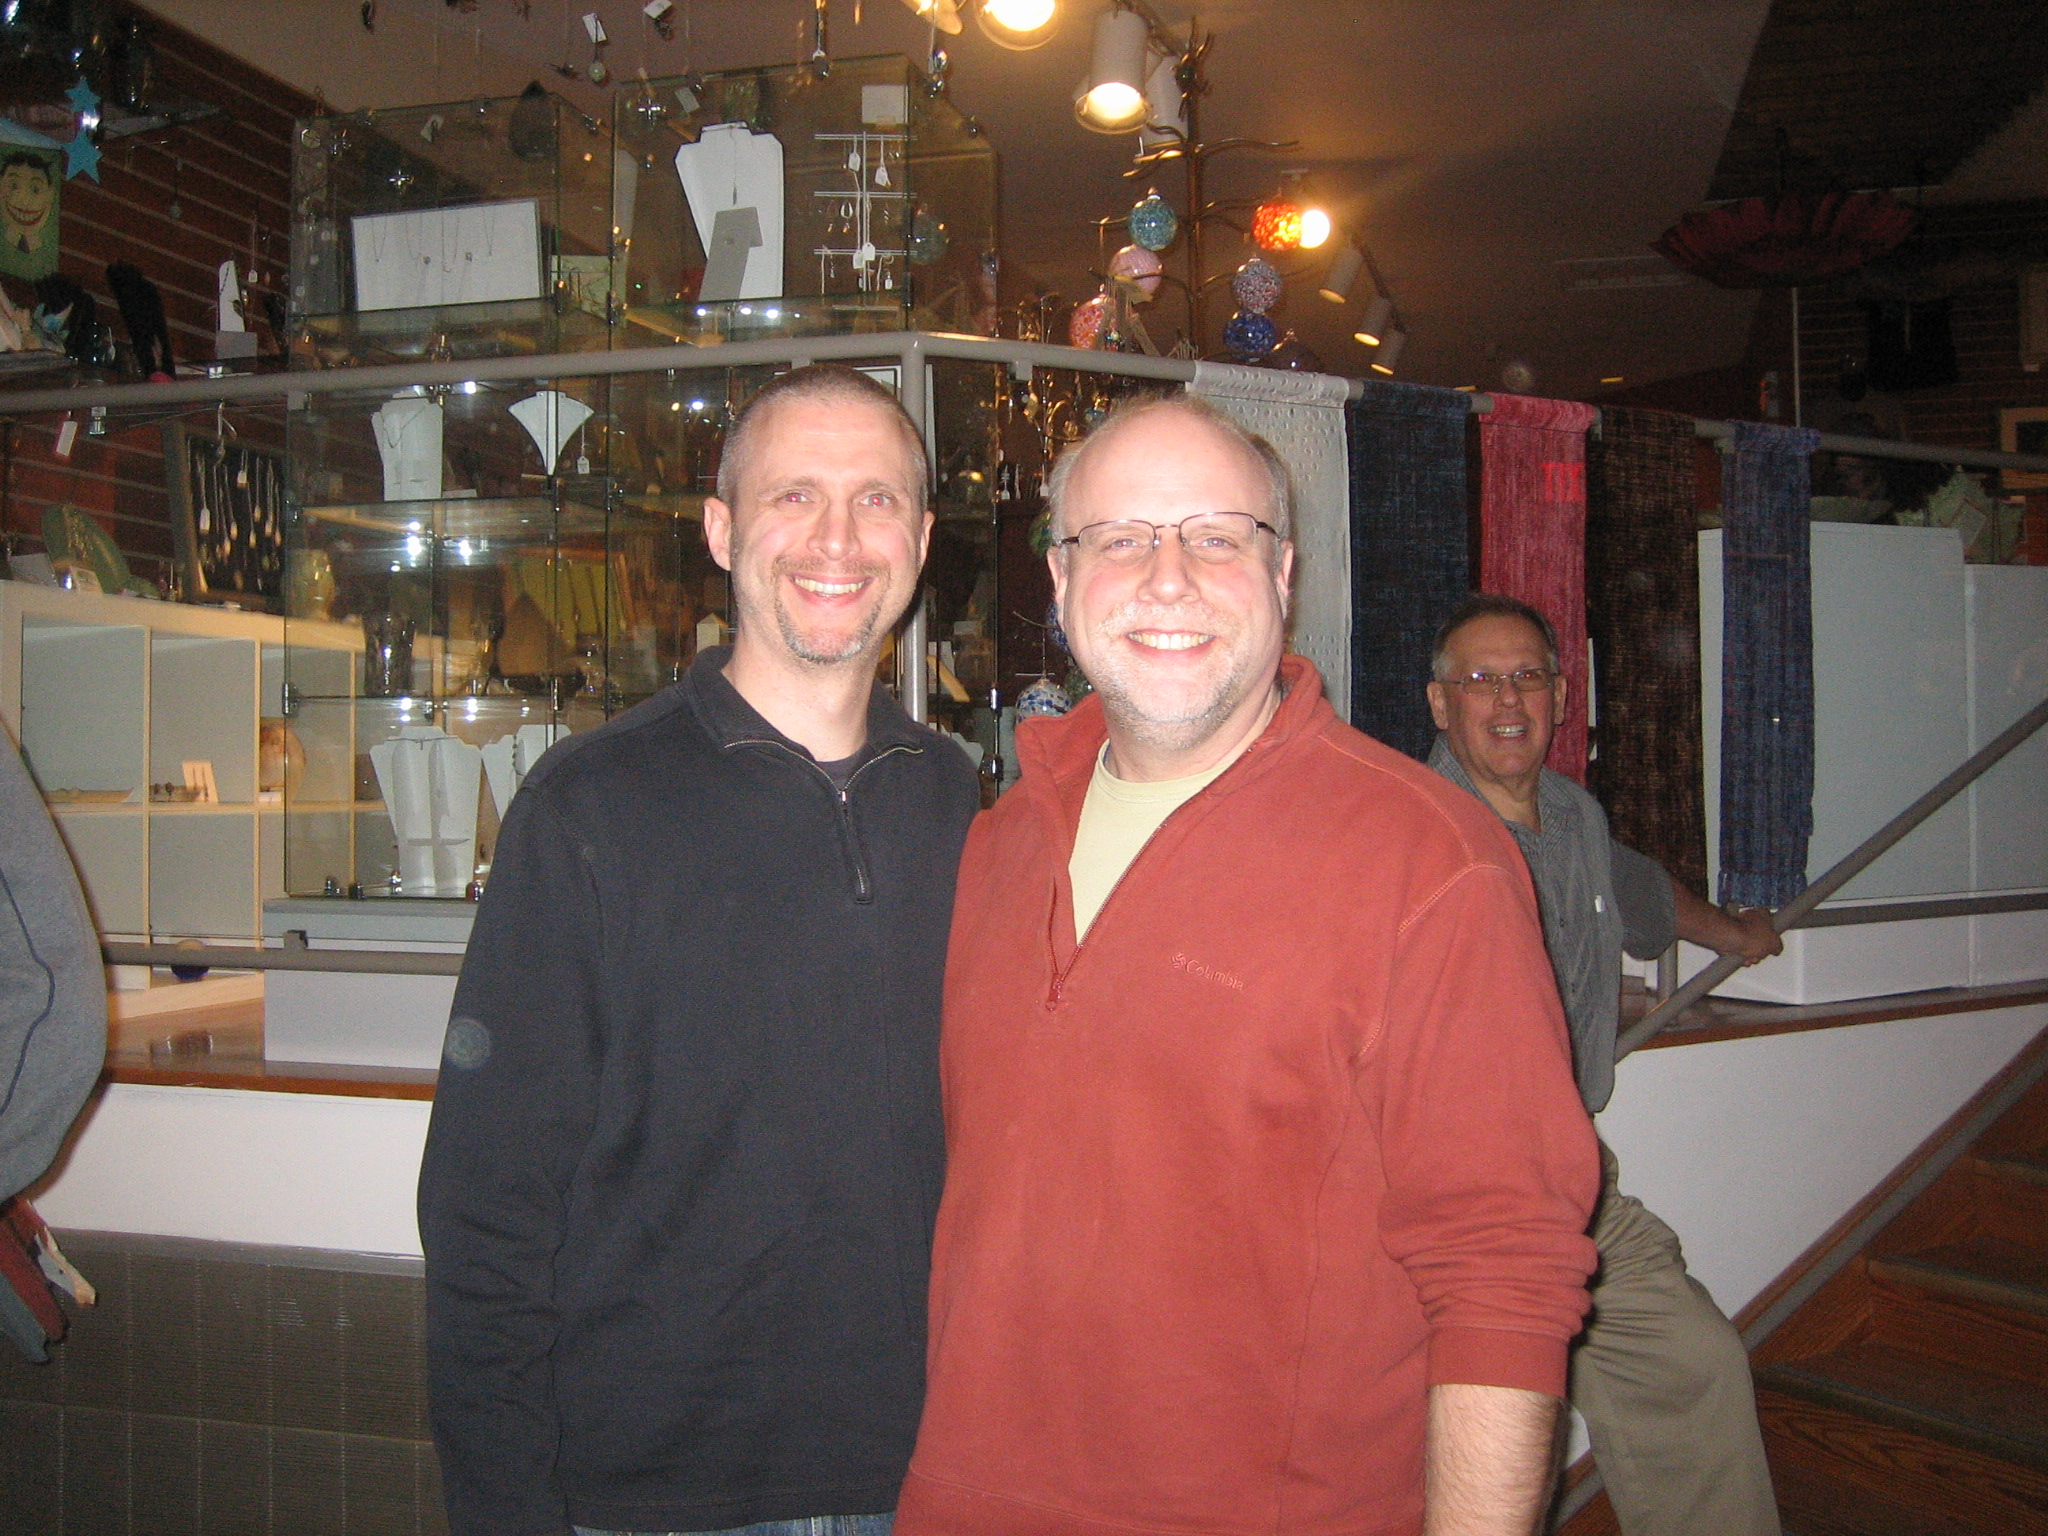 Martin Binder with Festival Director Tom Sims